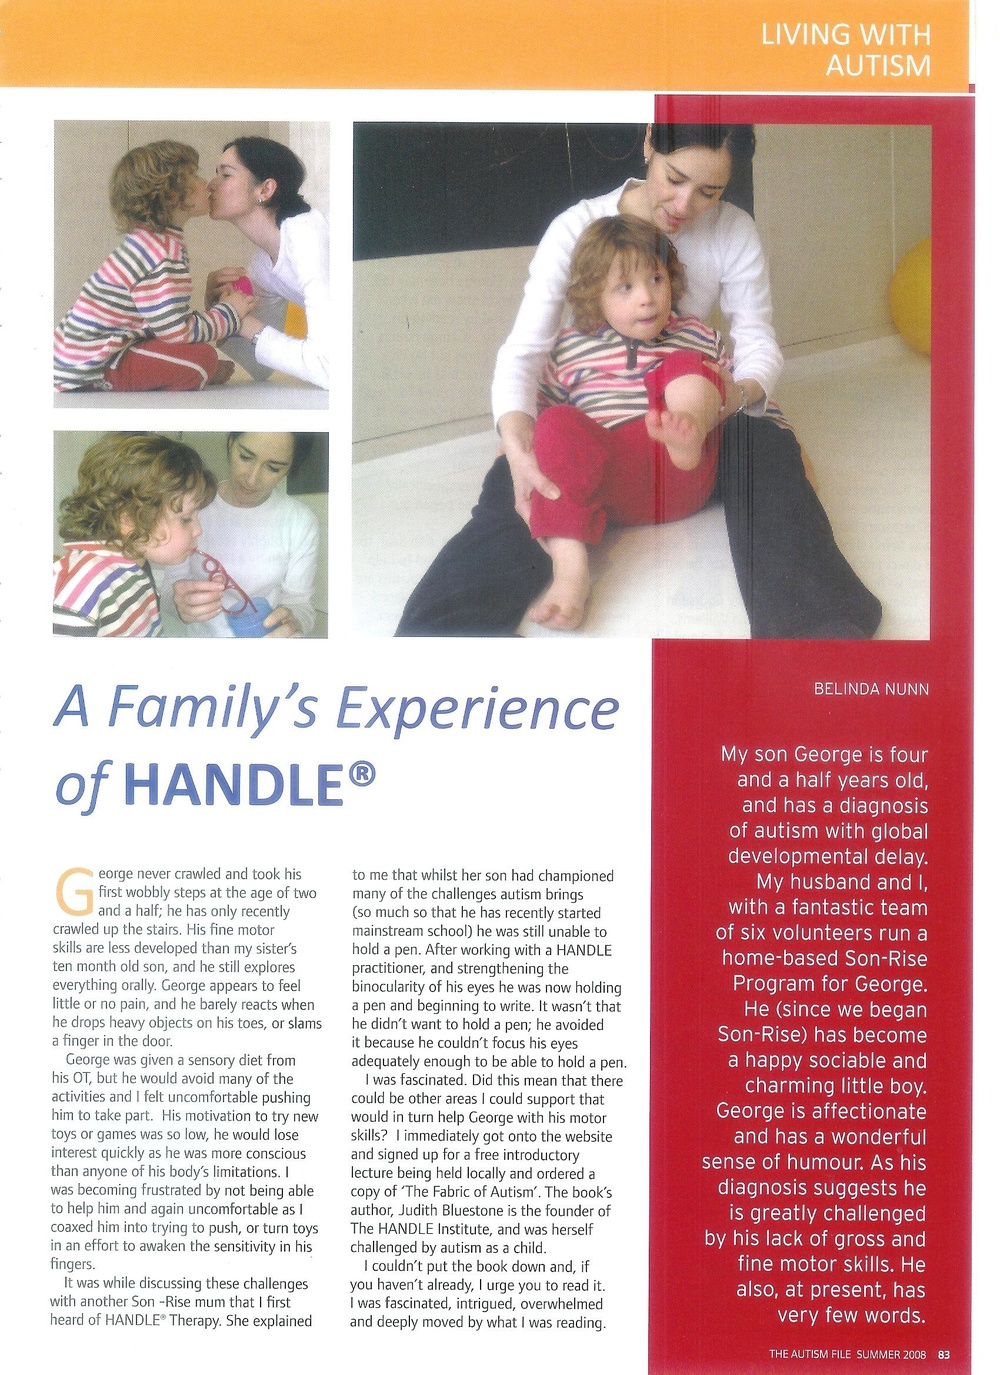 This article by a mother, Belinda Nunn, has more information about a family's experience of HANDLE